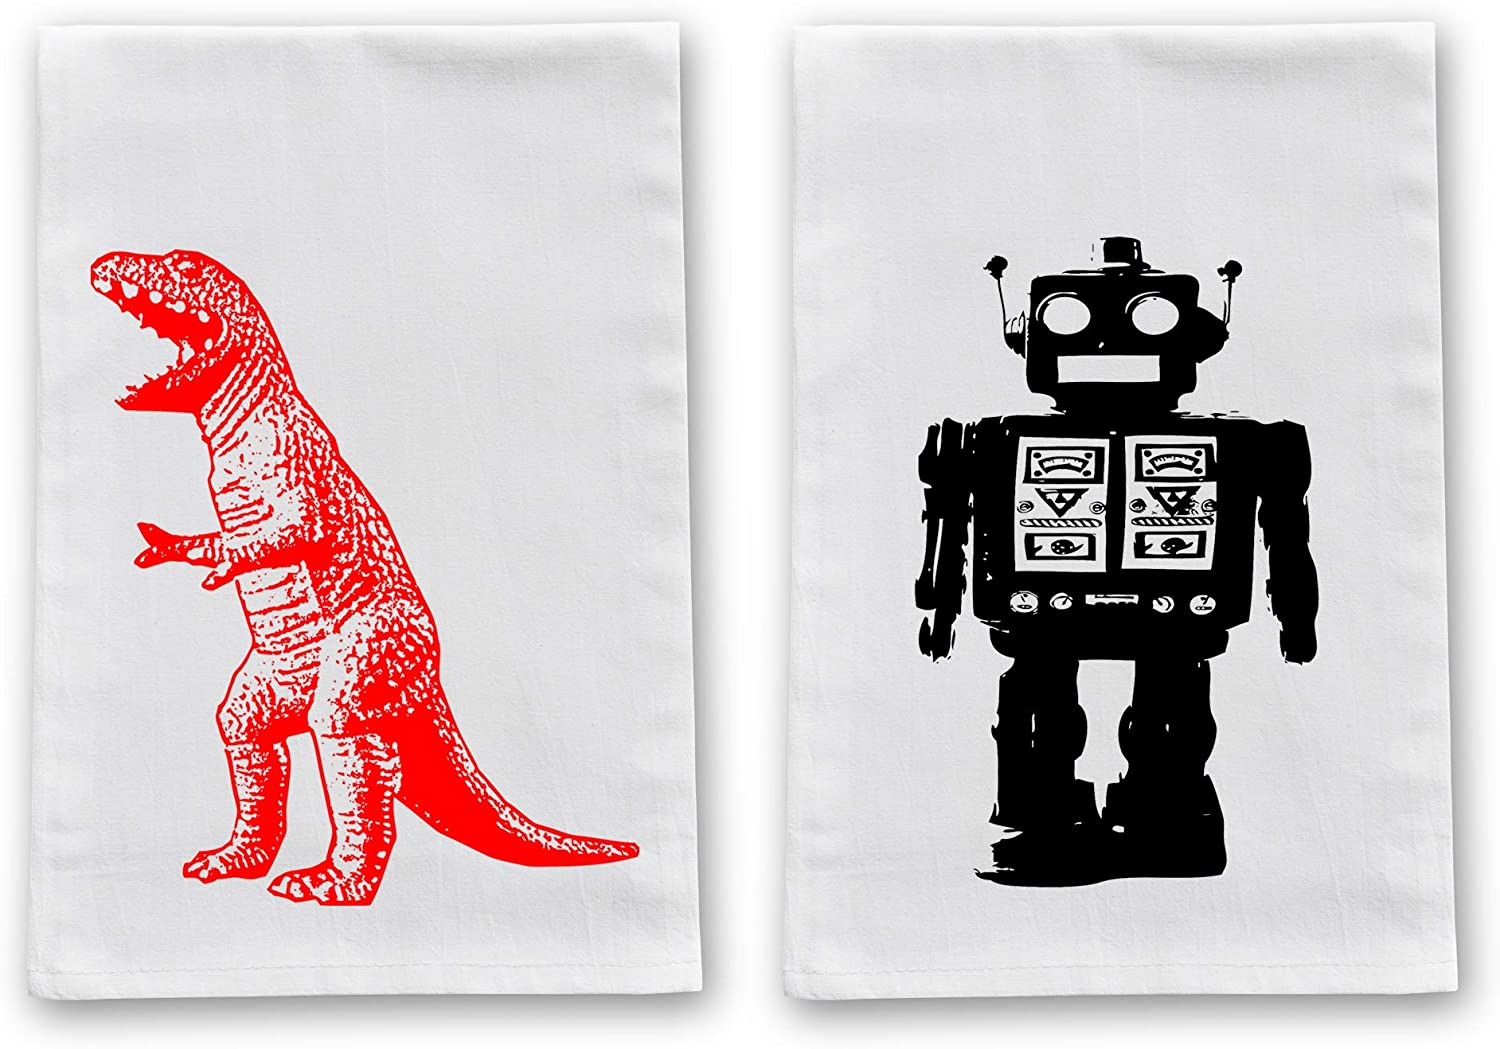 Happy Family Clothing Funny Kitchen Tea Towels, Decorative Flour Sack Dish Towels, Dishcloths Gift Set of 2 (Geeky Robot & T-Rex - 2 Pack)